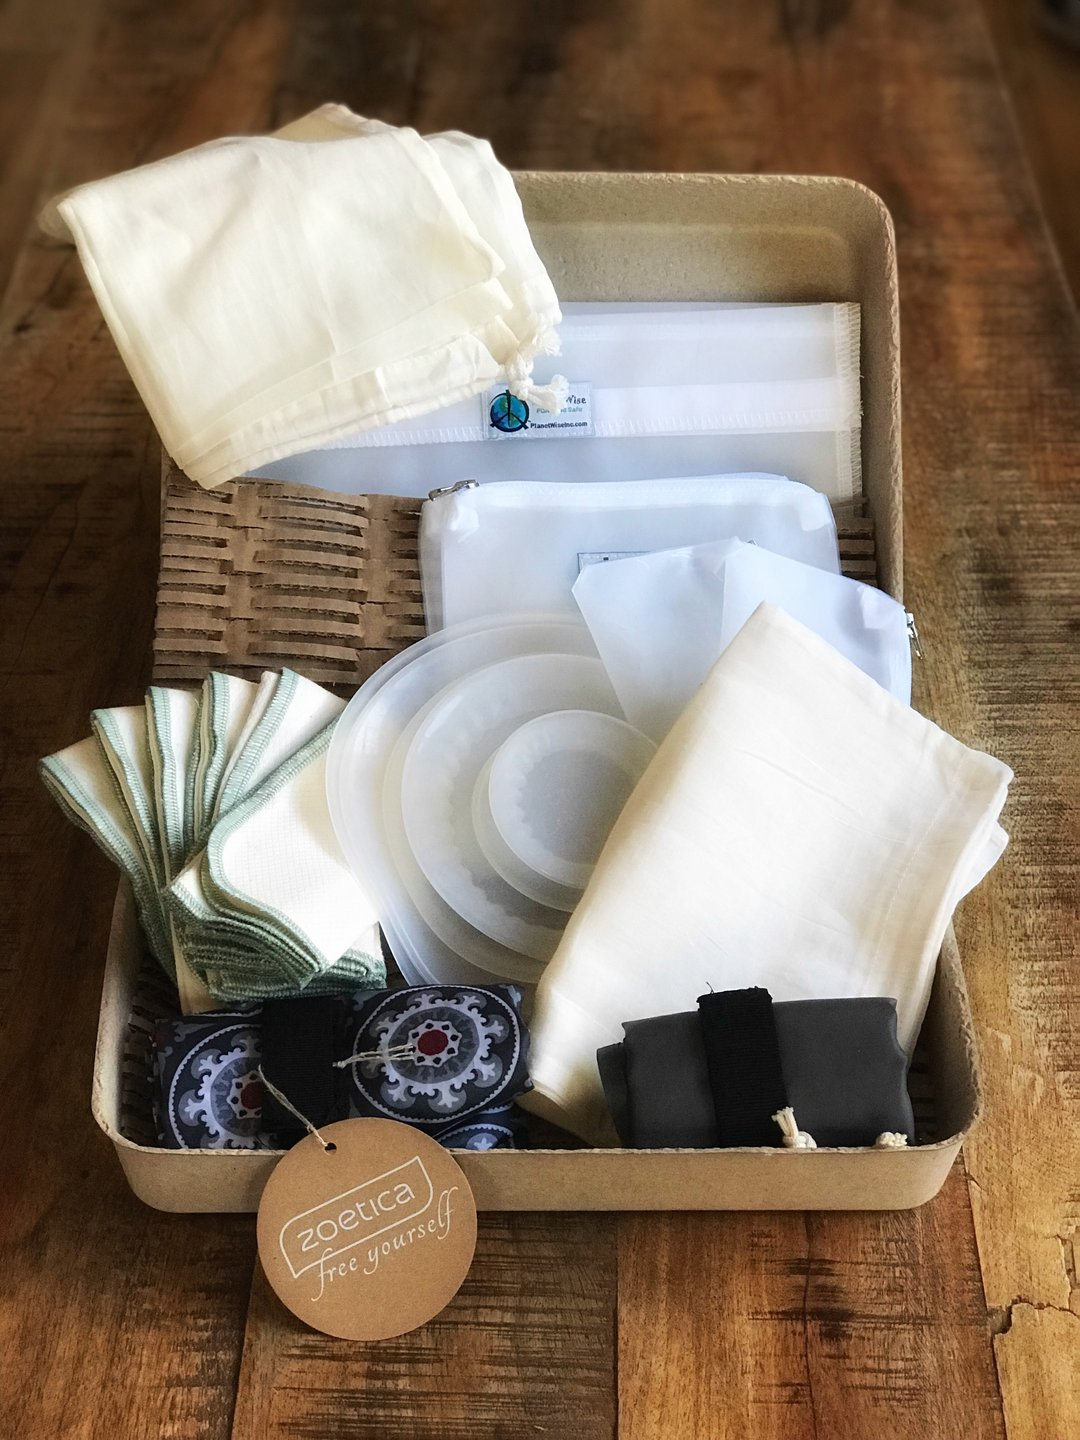 Zoetica - Sustainable Kitchen Box - closing gifts